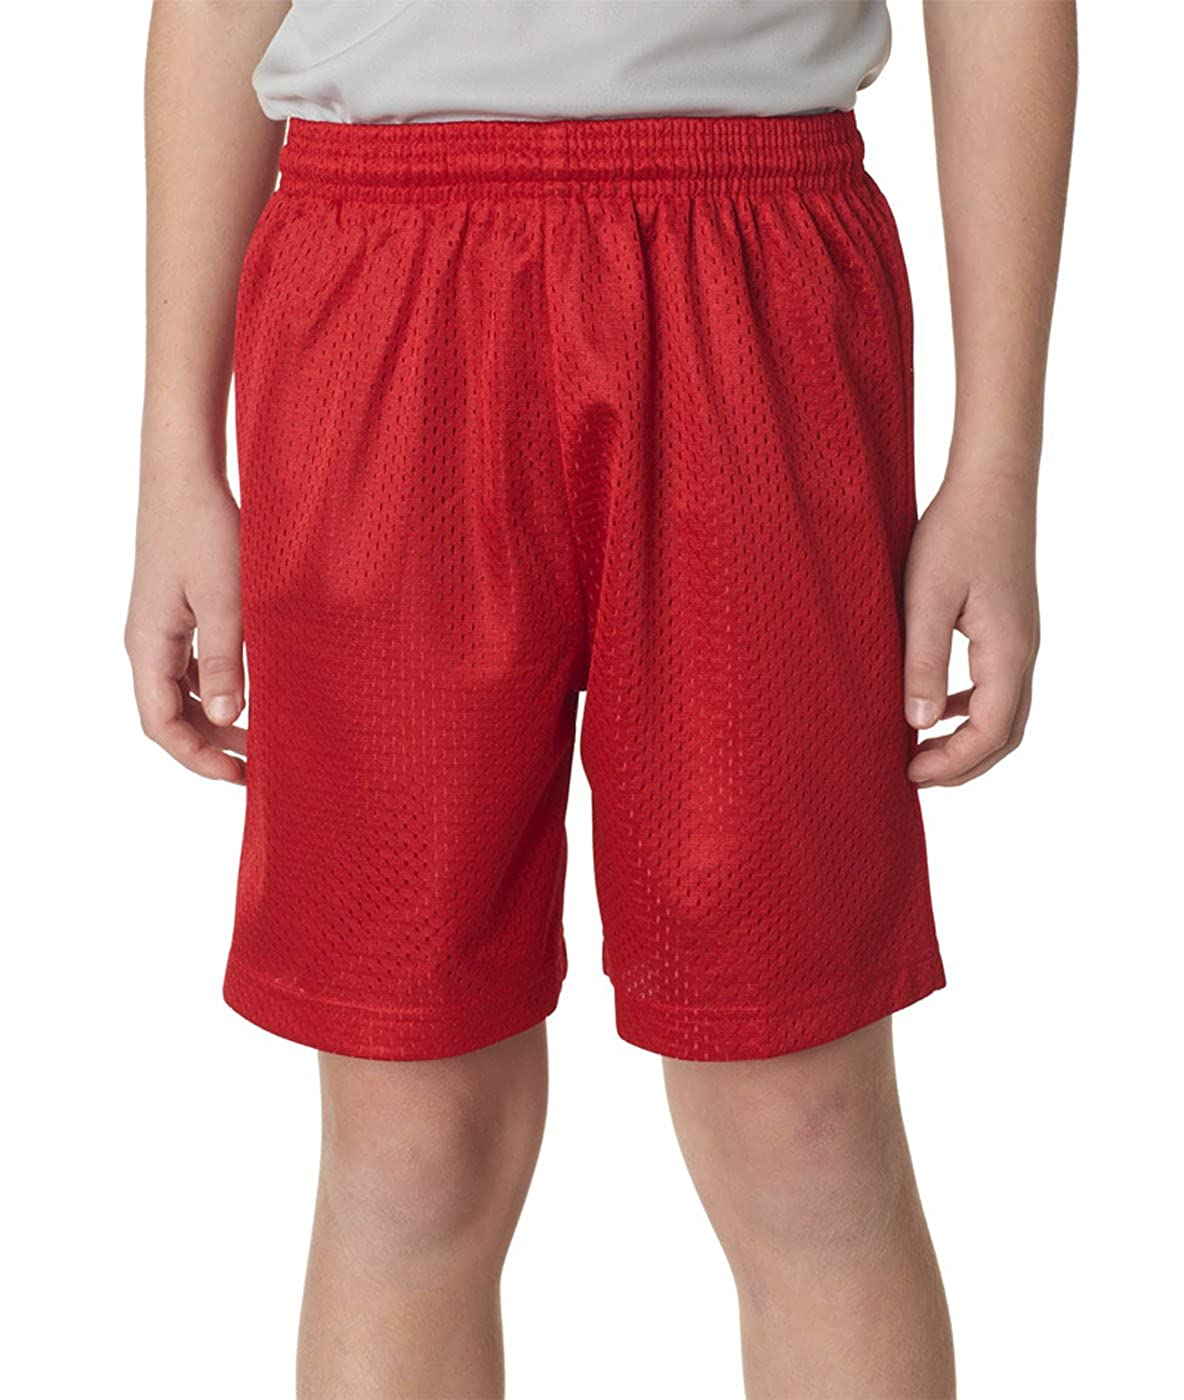 A4 Youth 10' Ultra Tight Knit Reversible Interlock Short NB5301